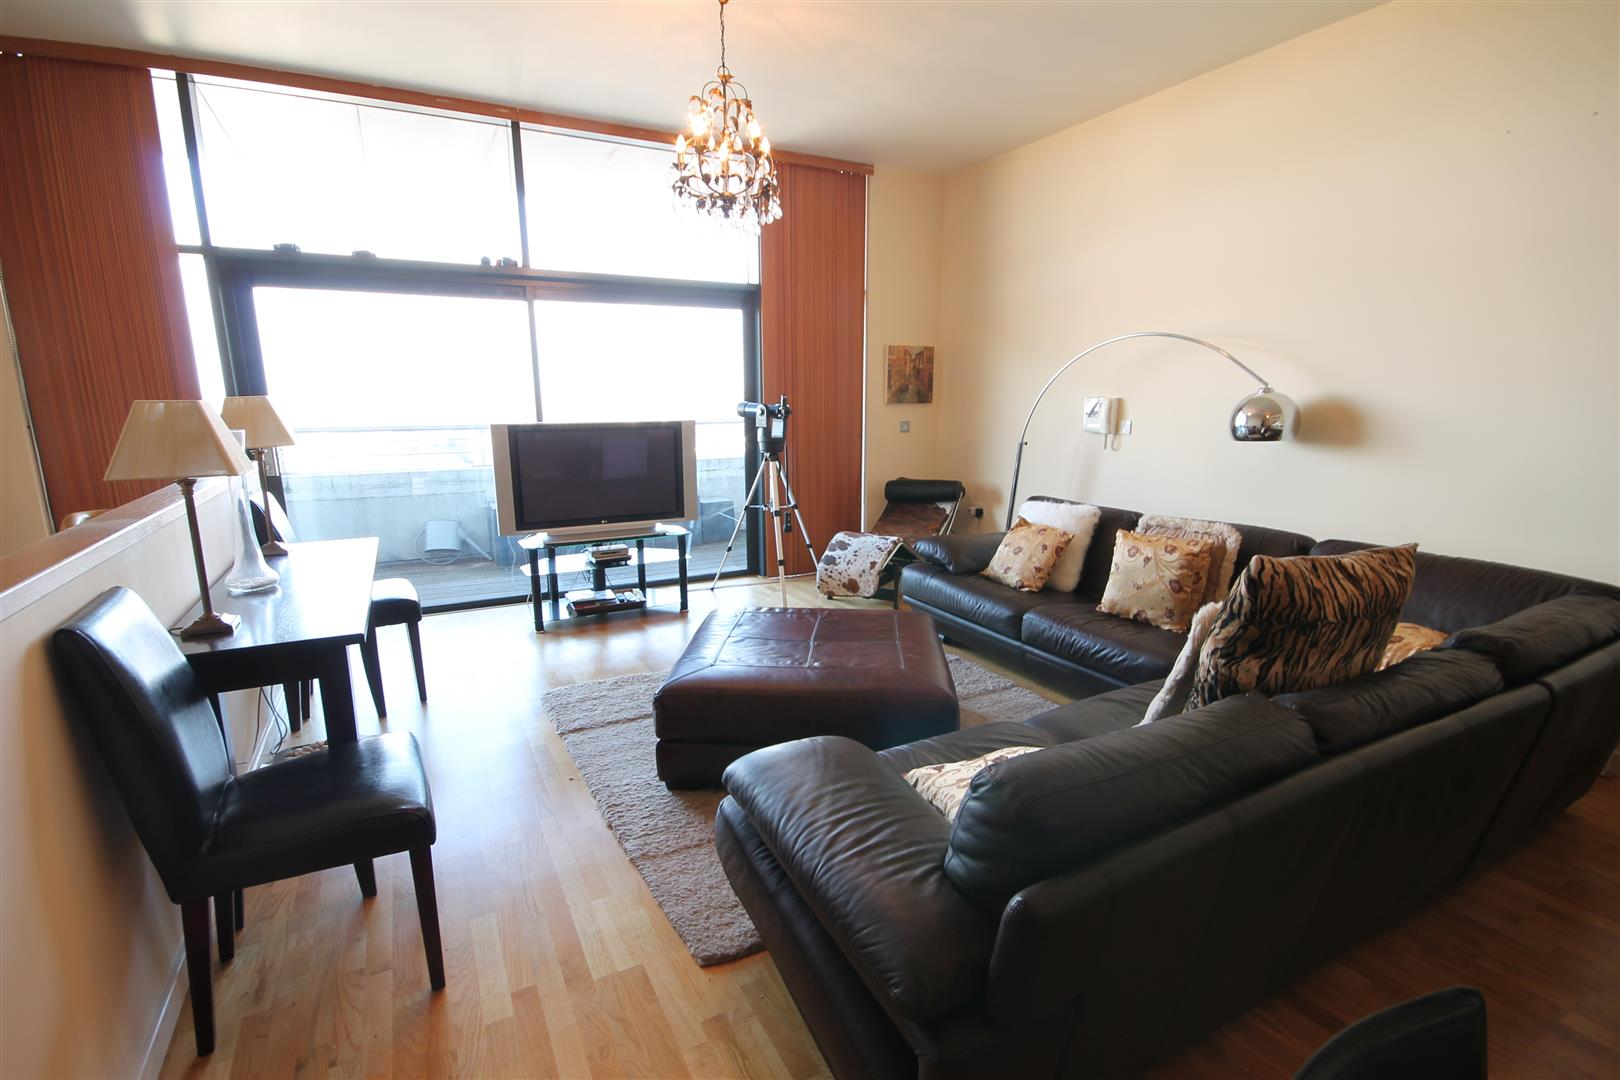 Lvl 10, 55 Degrees North Newcastle Upon Tyne, 3 Bedrooms  Apartment ,To Let